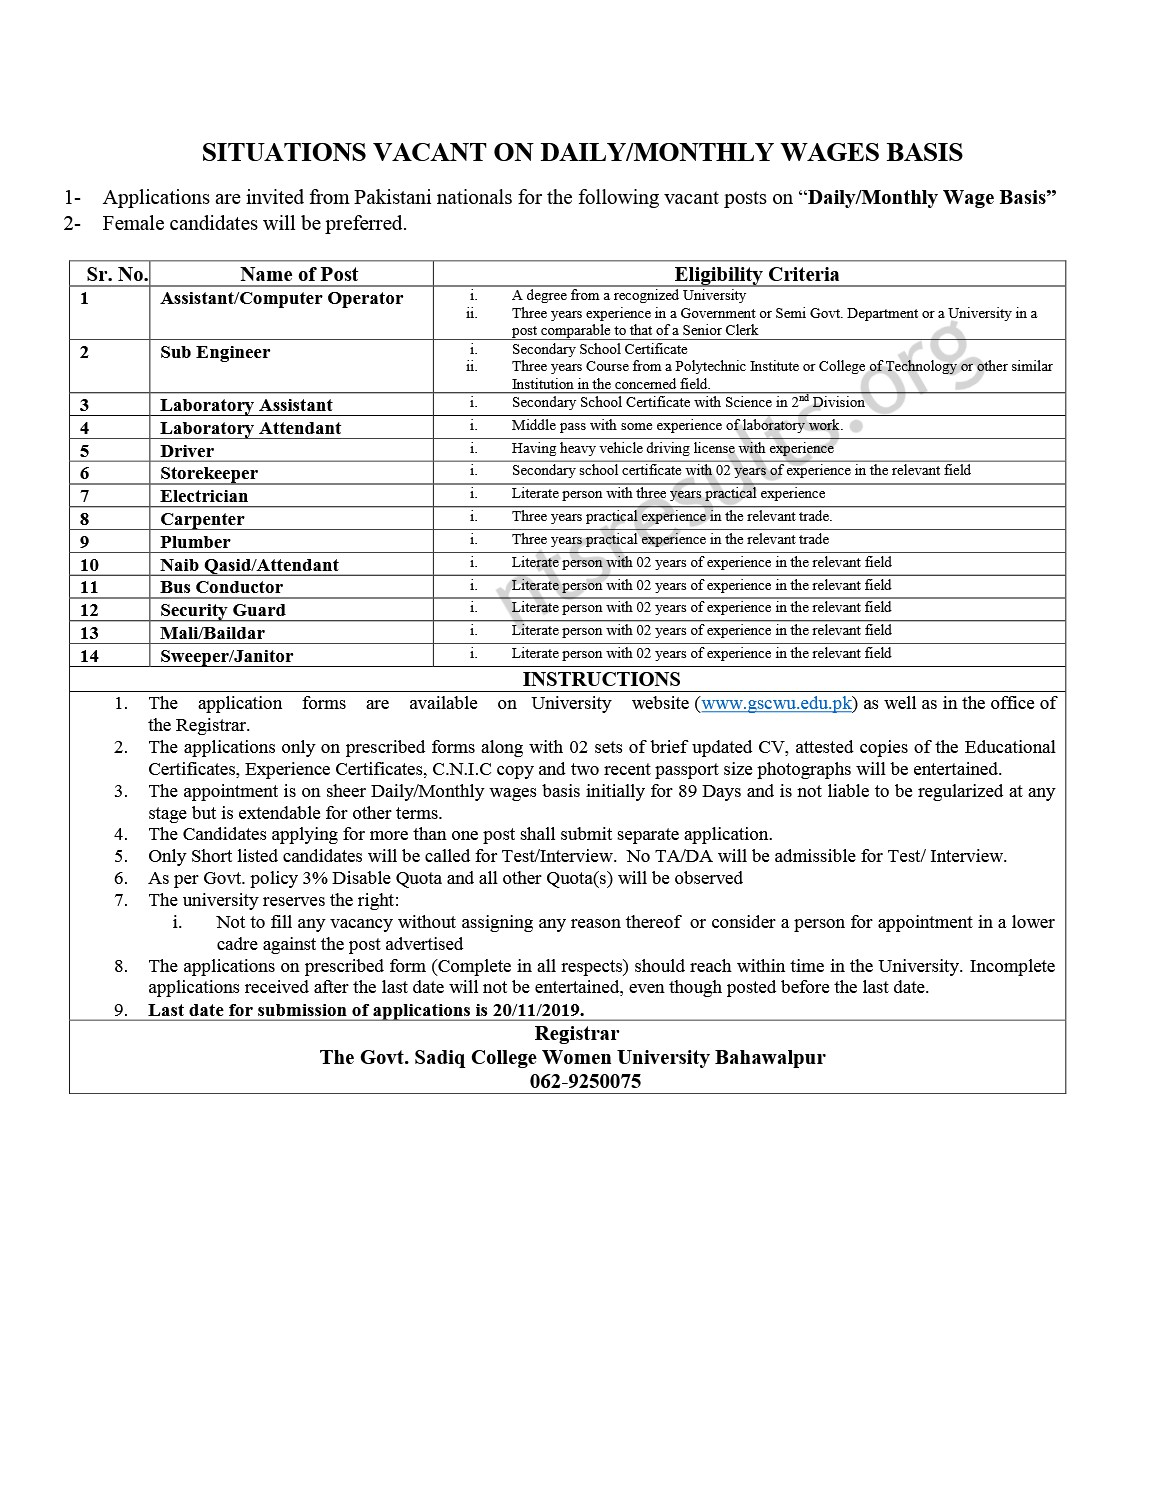 Govt Sadiq College Women University Bahawalpur GSCWU Jobs